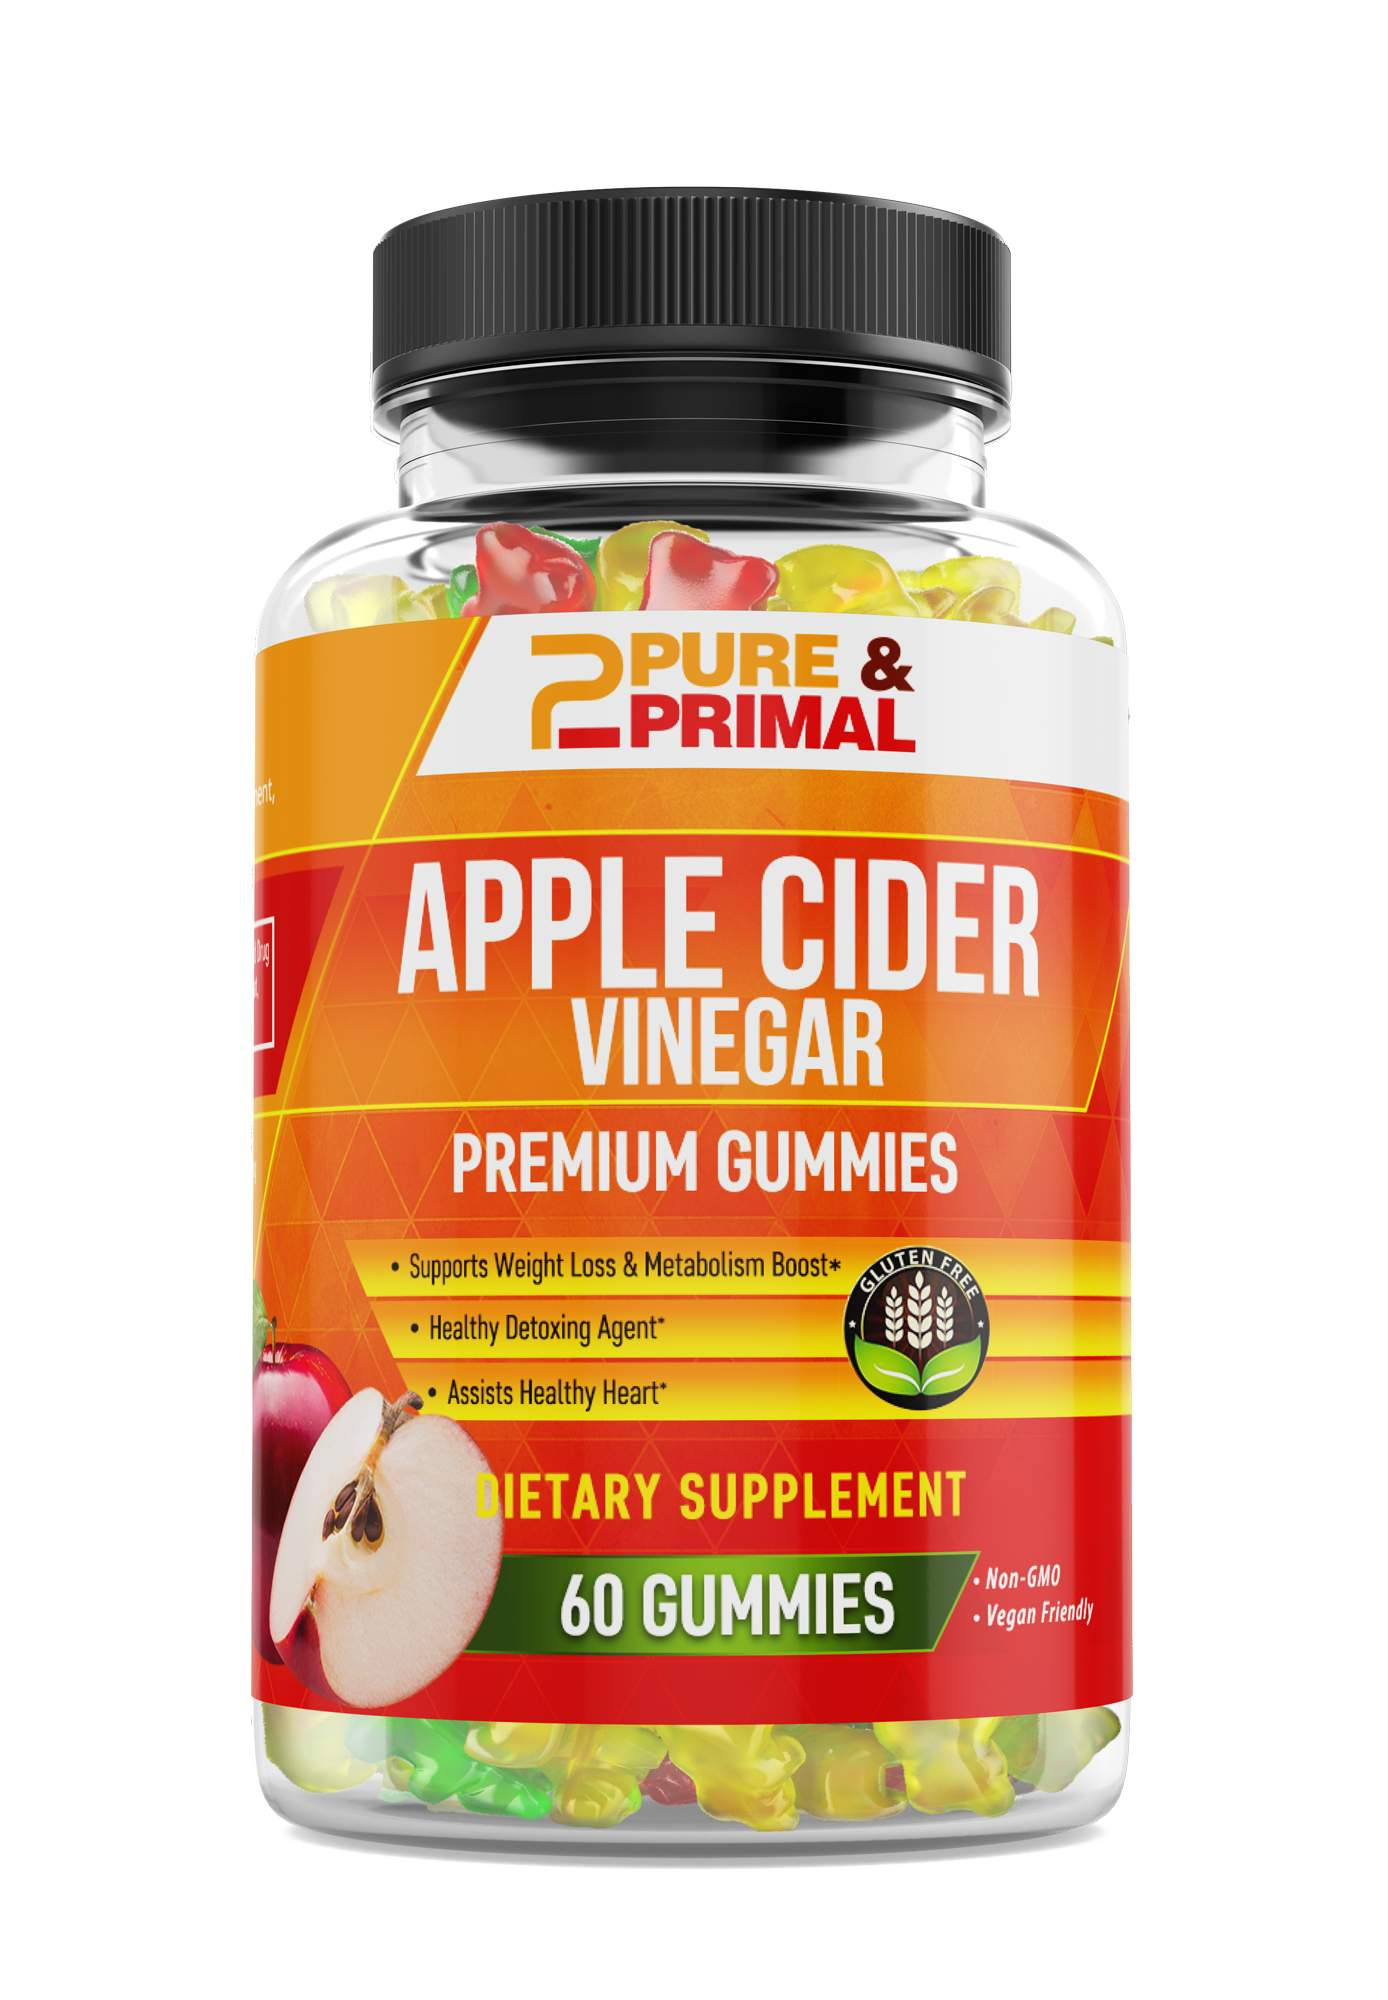 (2 Bottles) - Apple Cider Vinegar Gummies - Supports weight loss - Boost Metabolism and Energy - Supports Natural Detoxification